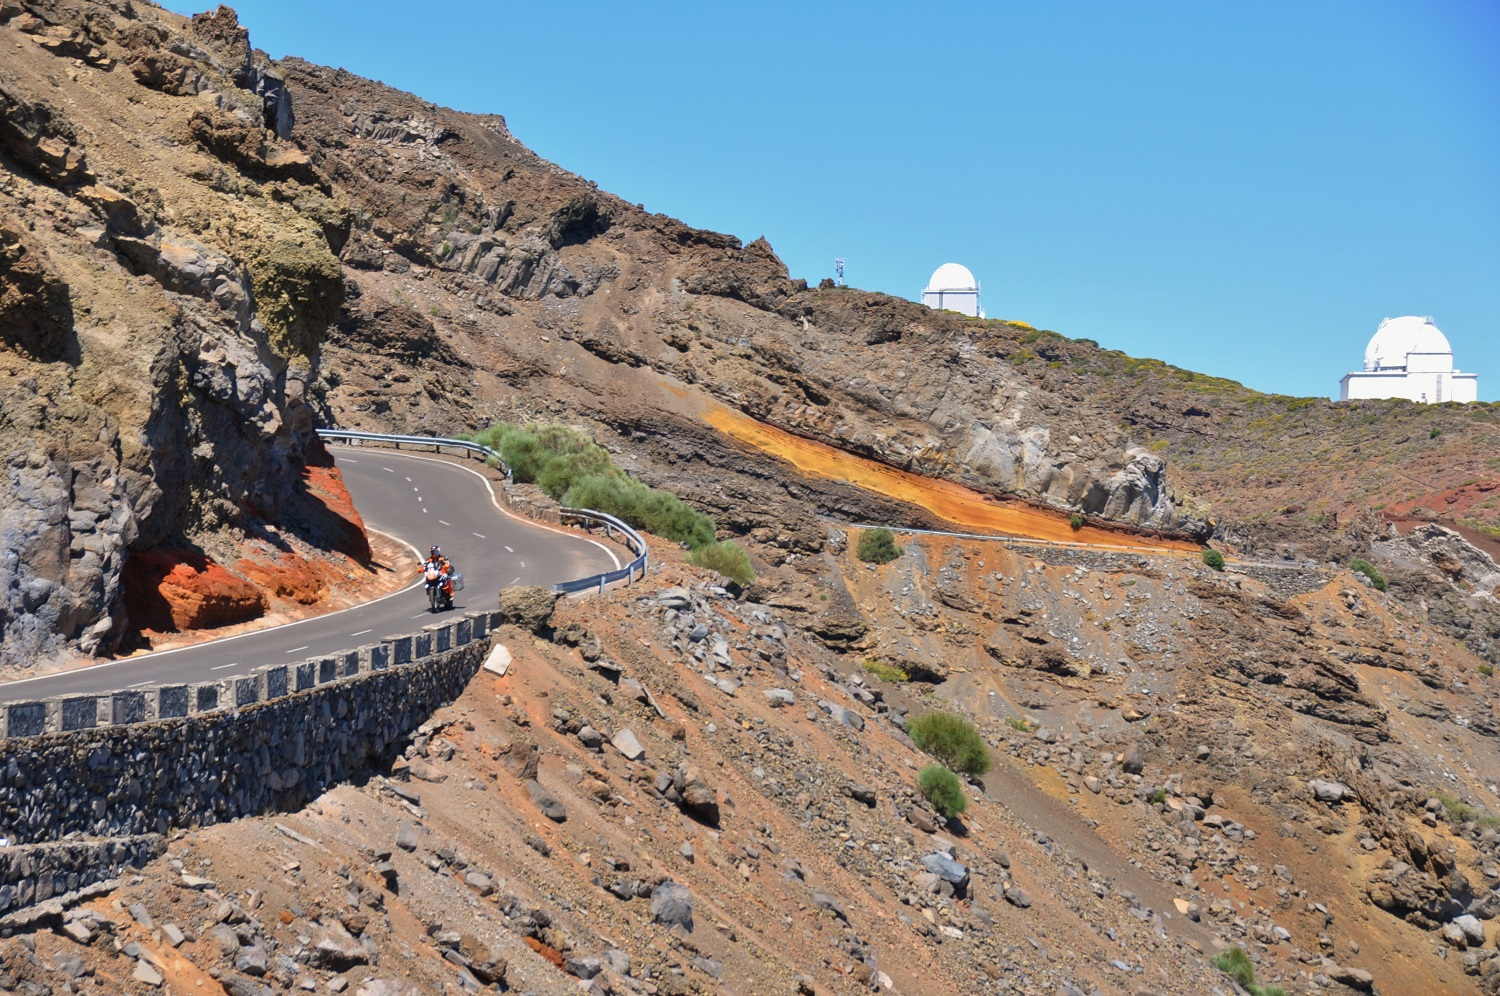 La Palma ist die Insel der Observatorien | La Palma is the island of observatories